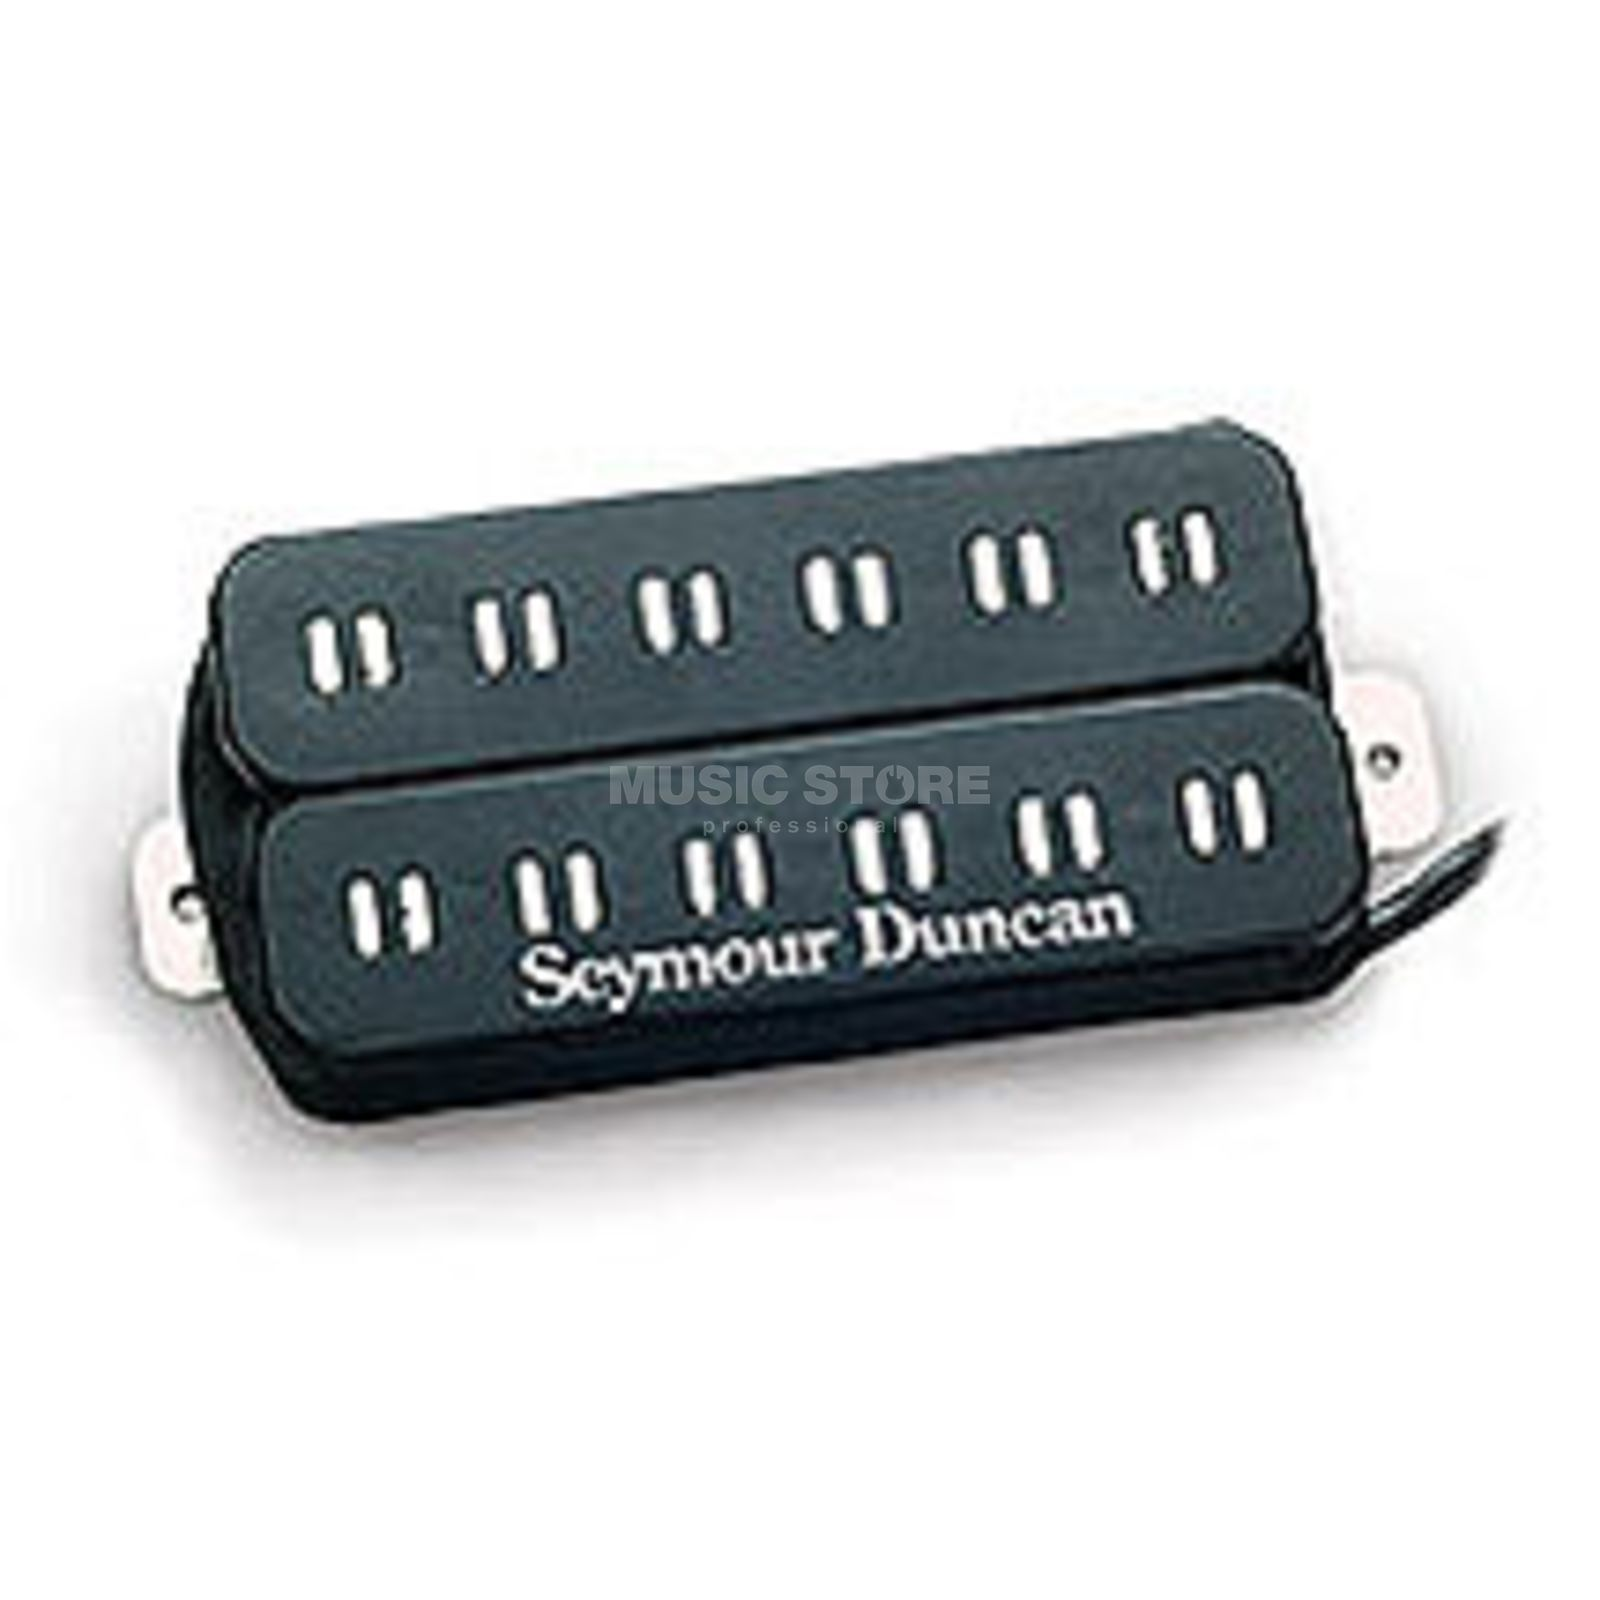 Seymour Duncan SPA-TB1B BLK 4C Axis Bridge bk Trembucker black 4-phase Produktbillede